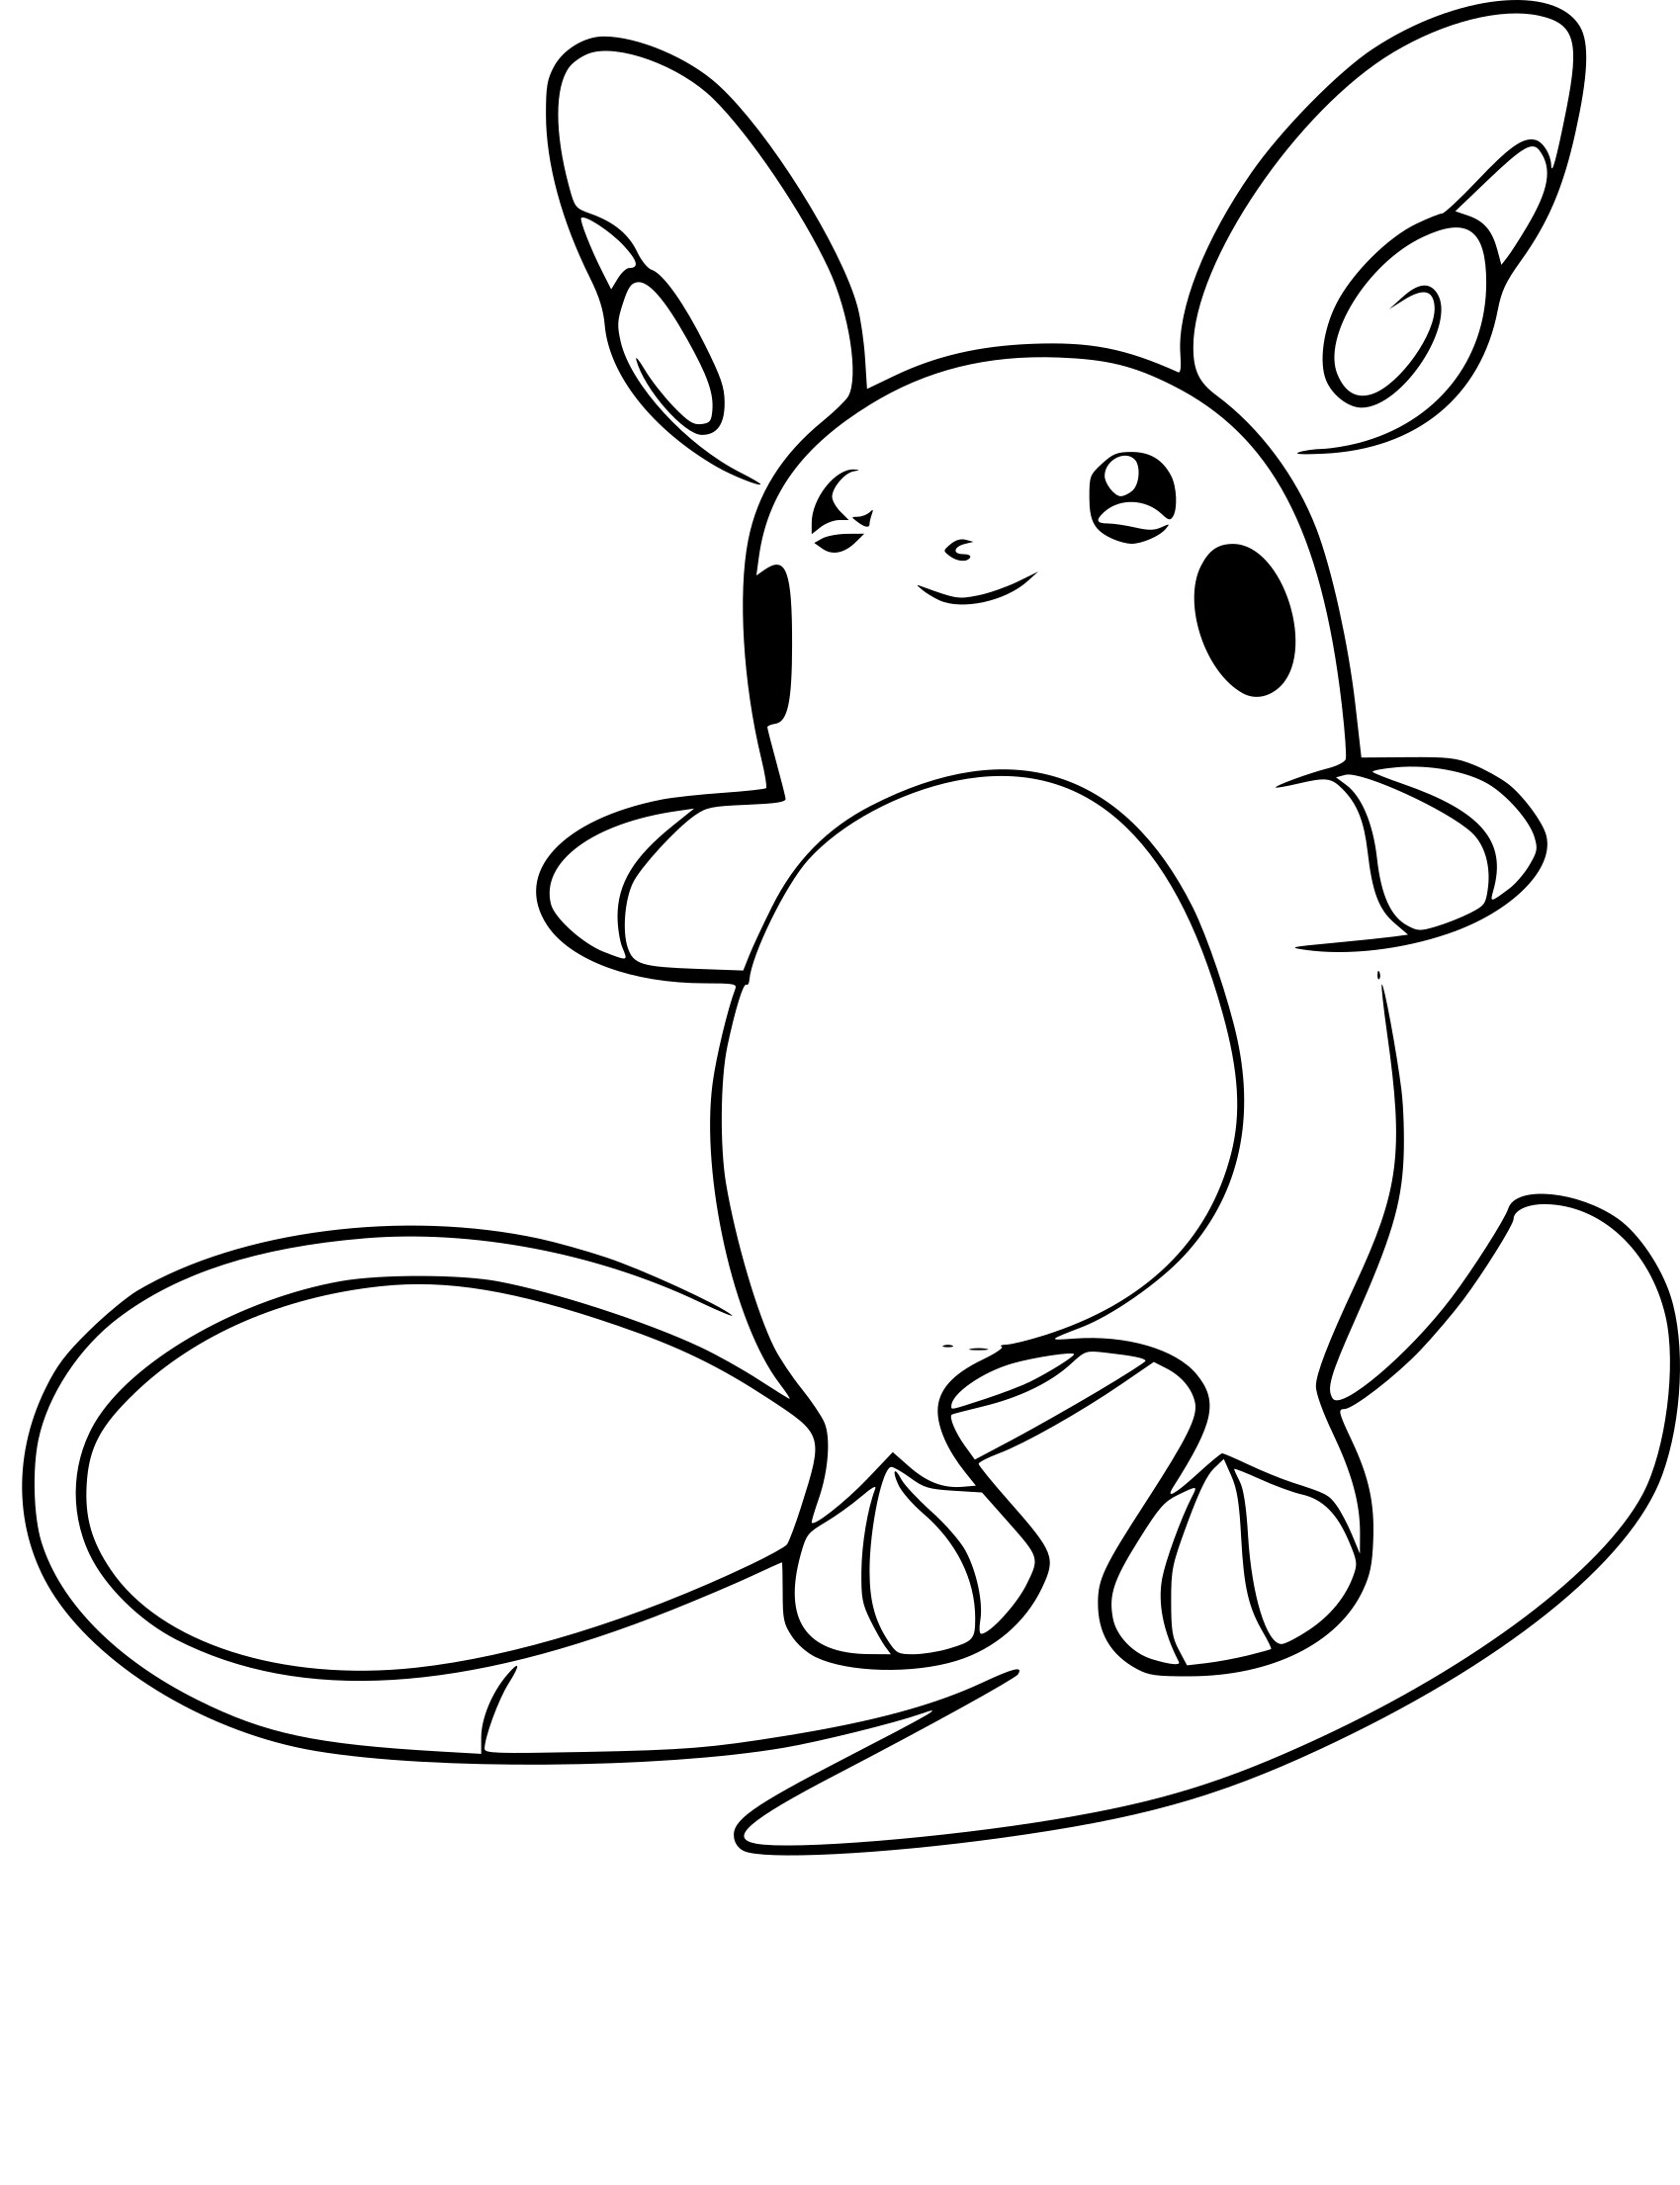 Coloriage Raichu D Alola Pokemon